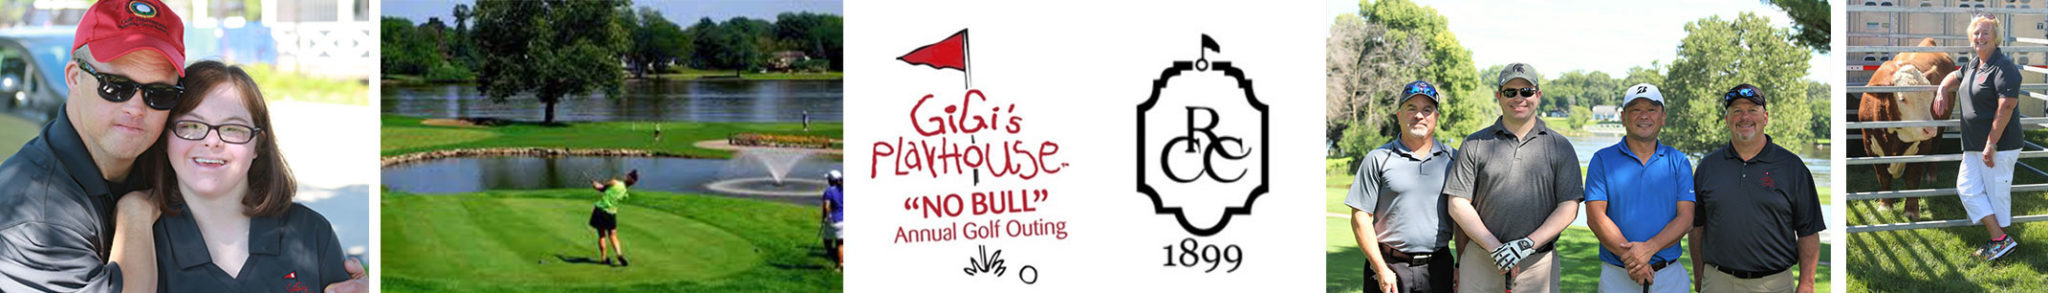 Save the Date Golf Outing